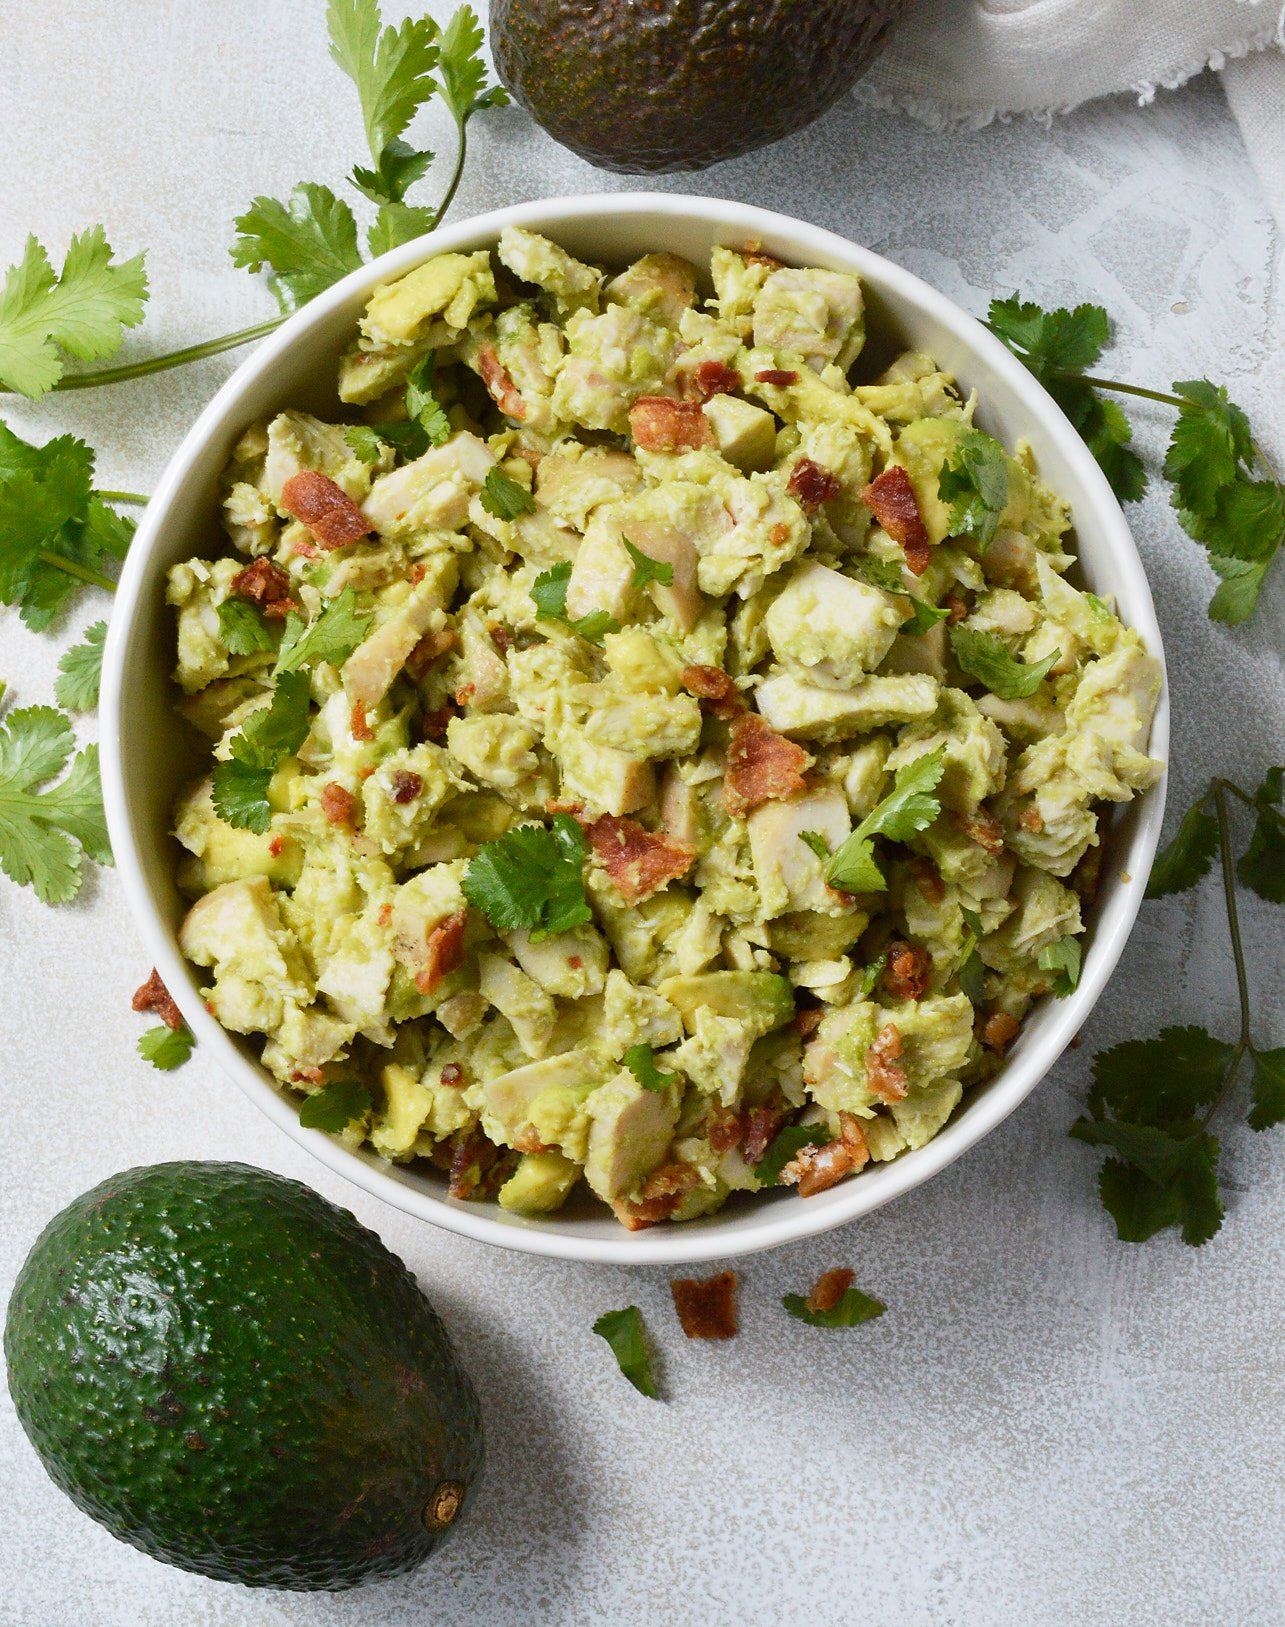 Bacon avocado chicken salad whole30 recipe wonkywonderful wanting to eat healthy and nutritious without giving up your favorite foods this bacon avocado forumfinder Images